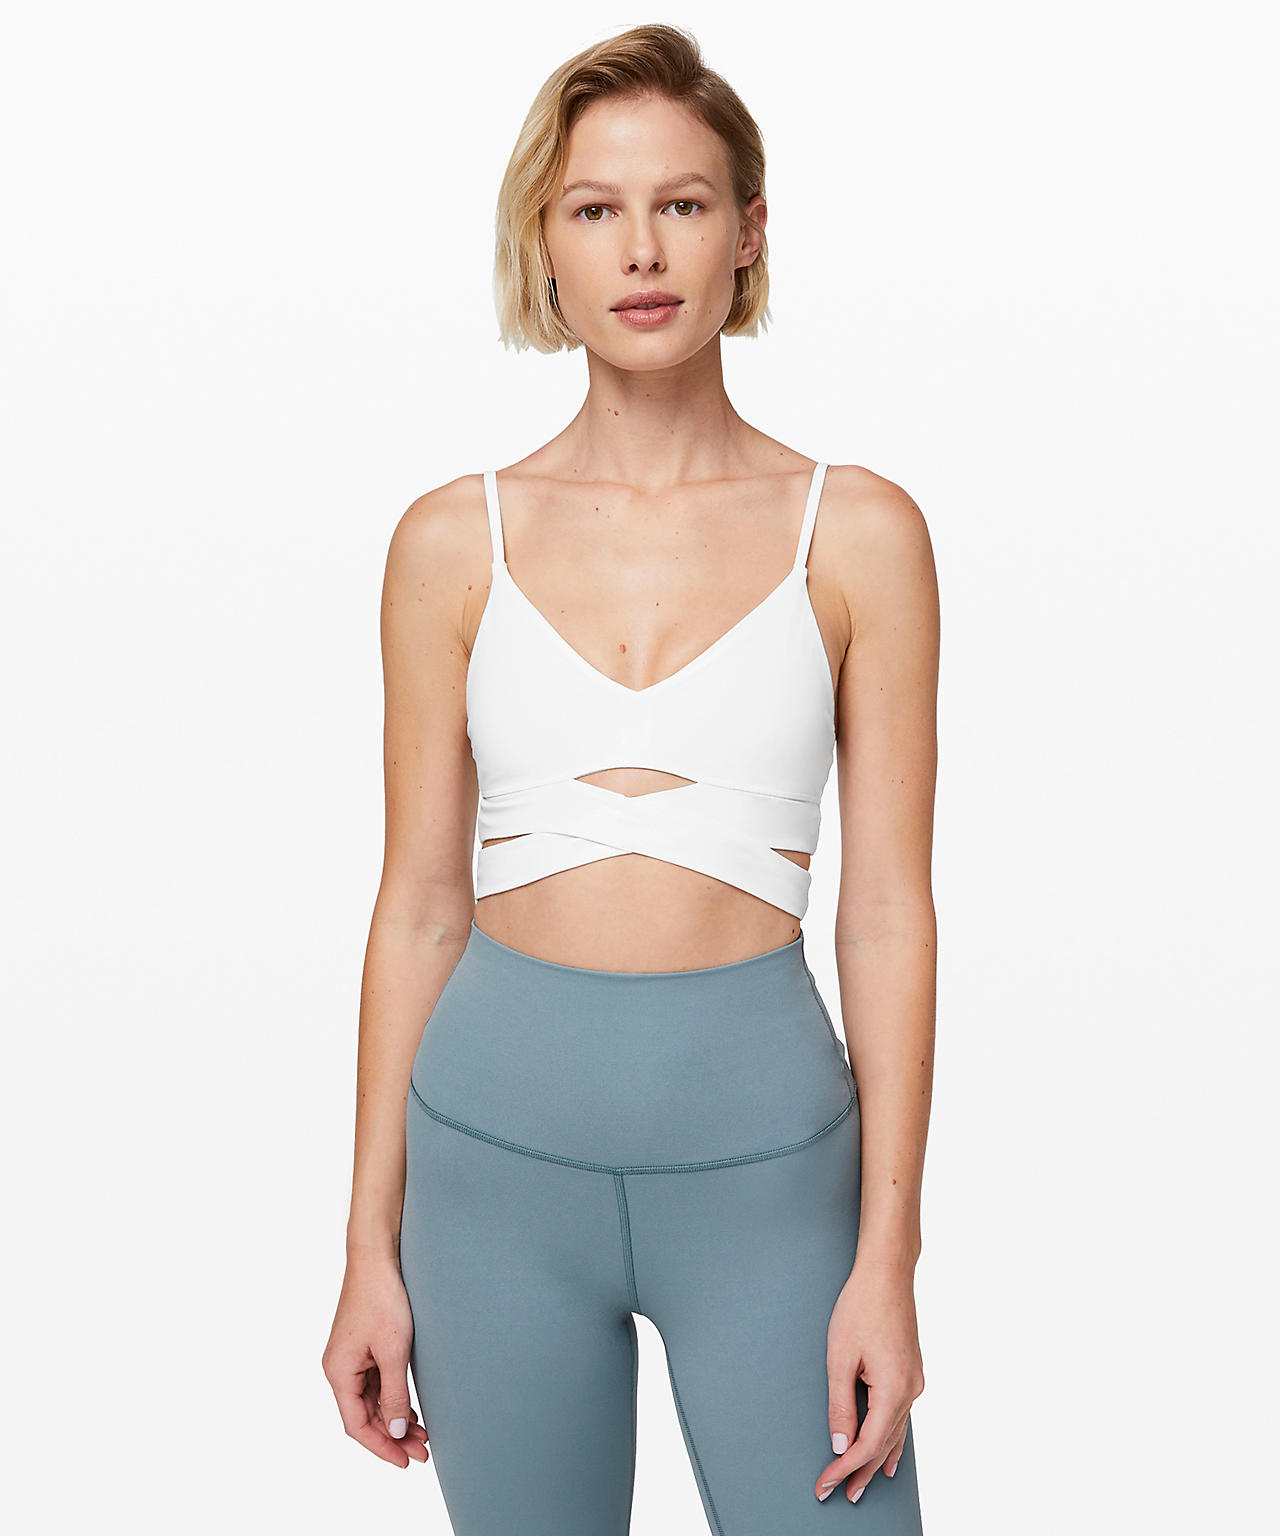 Still Now Bra, Lululemon Upload